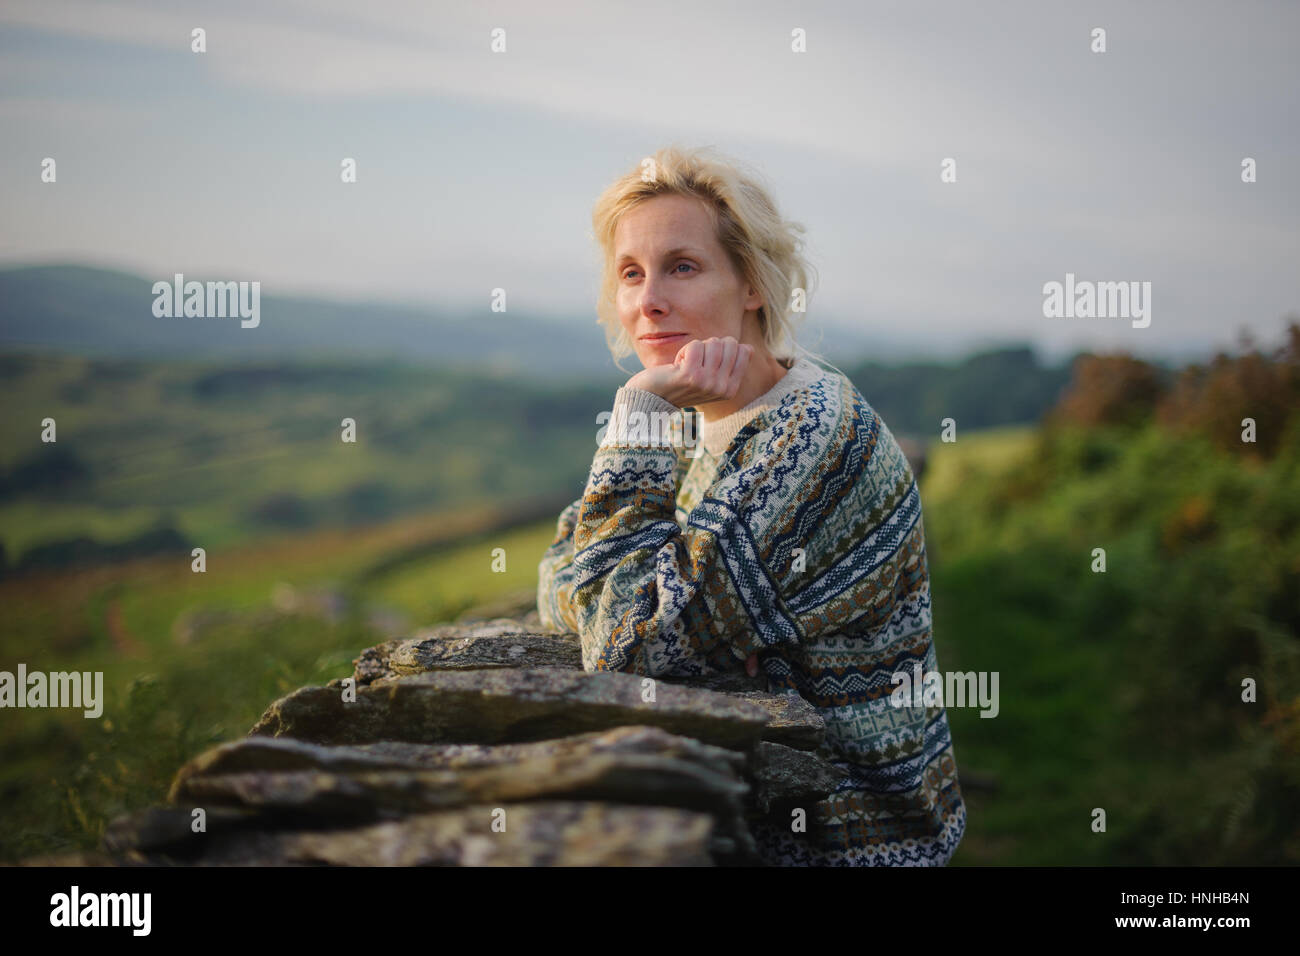 Woman in the countryside - Stock Image